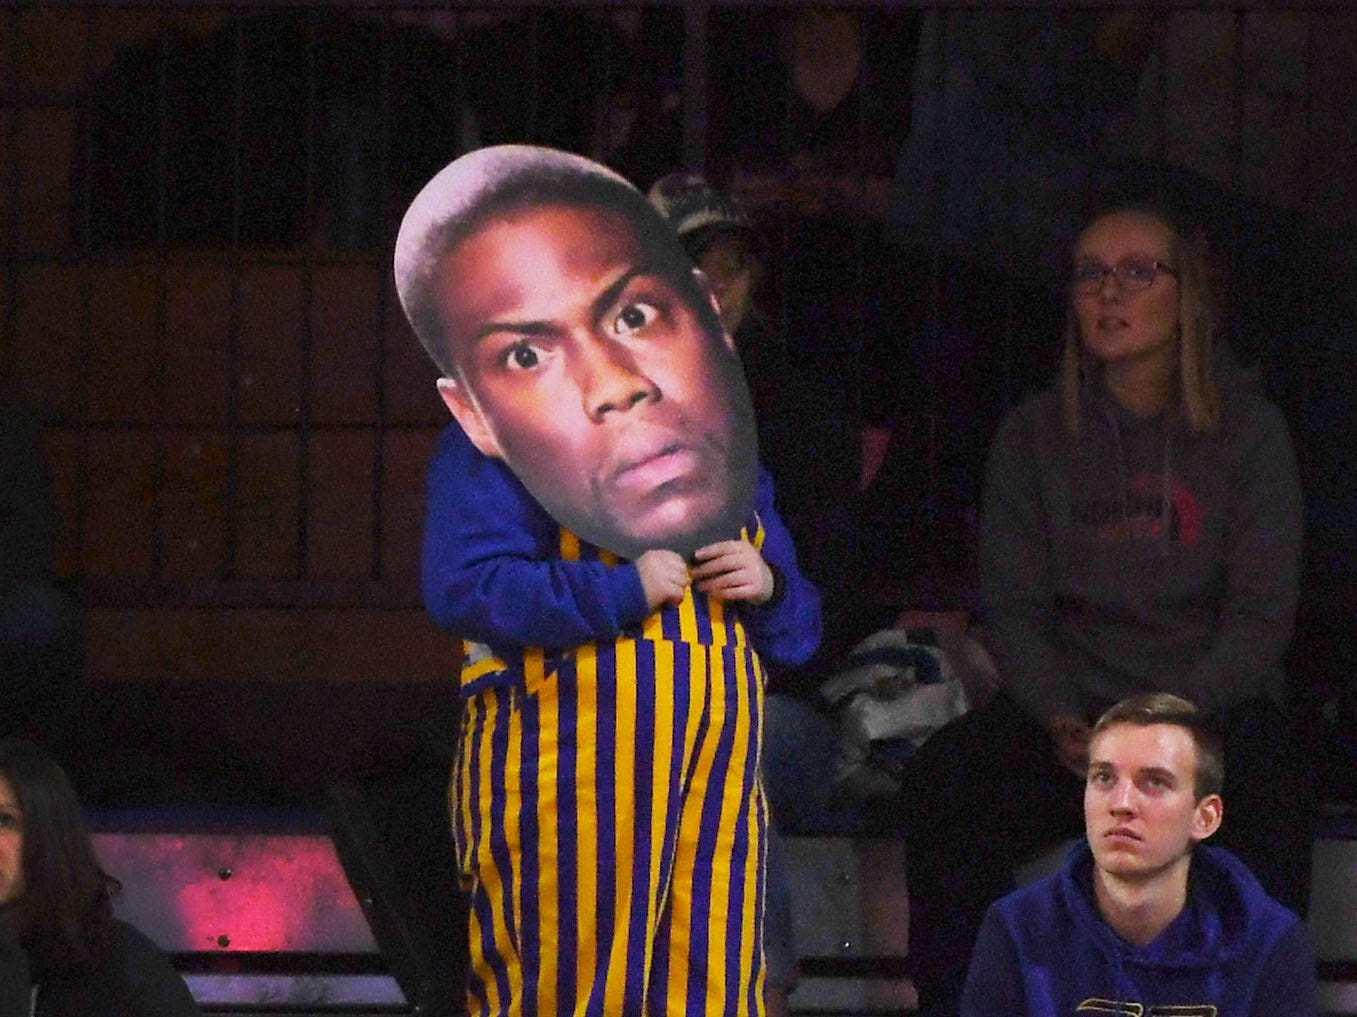 An SDSU student holds up a cutout of Chris Rock during the game against Omaha Saturday, Jan. 26, at Frost Arena in Brookings.